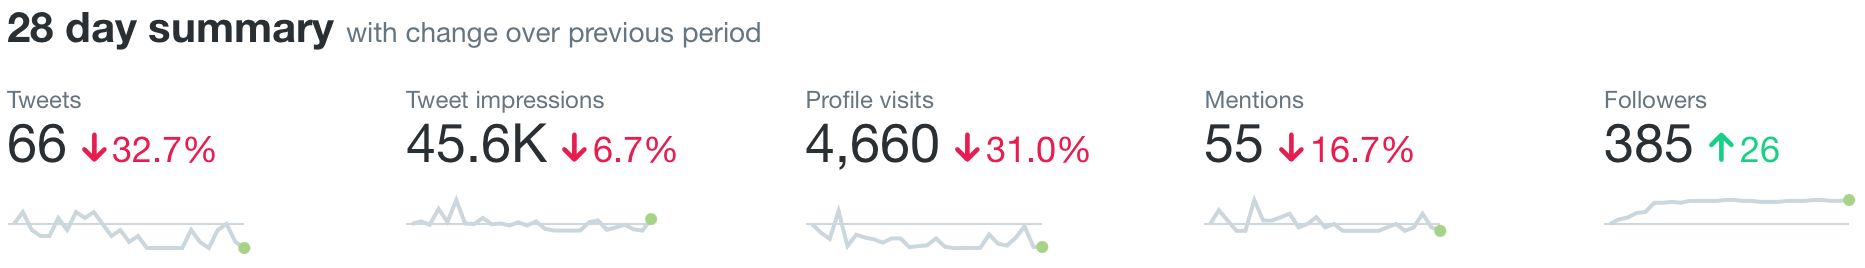 A screenshot of my Twitter analytics for May 2021. It shows 66 tweets, 45,600 tweet impressions, 4,660 profile visits, 55 mentions, and 385 followers (26 more than last month).